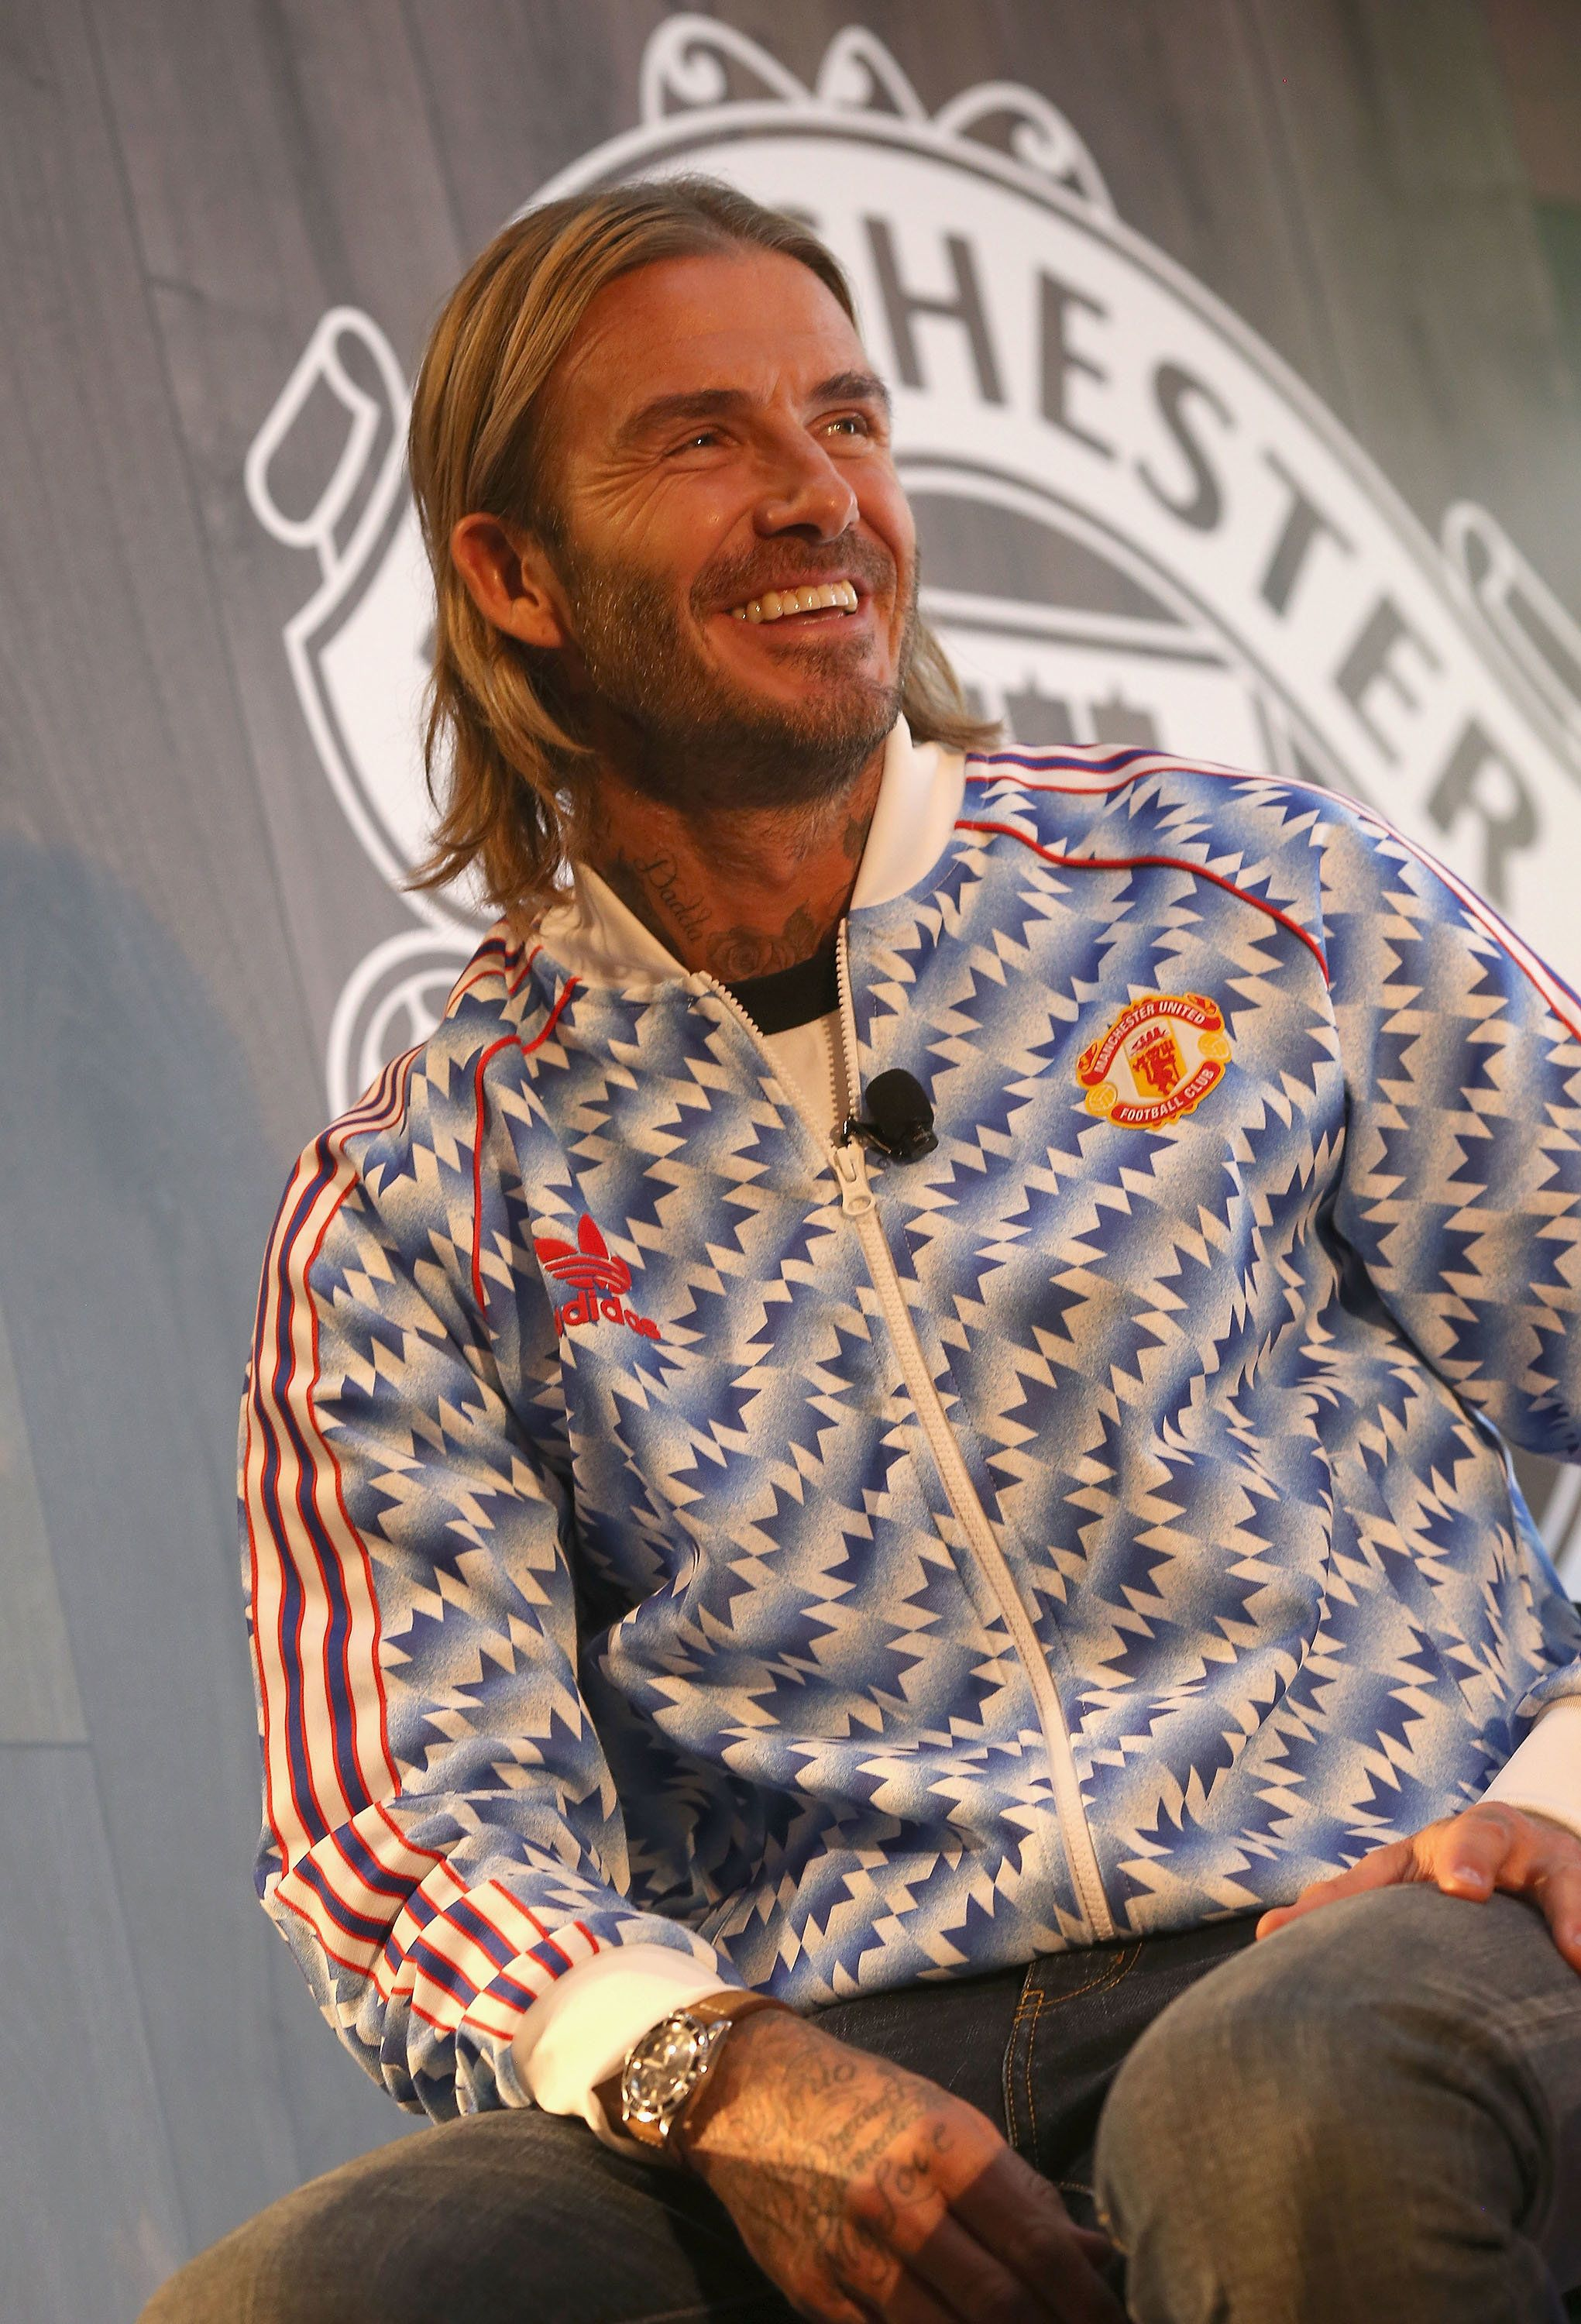 David Beckham Reveals He Is Prone To Getting Nits Just Like Any Other